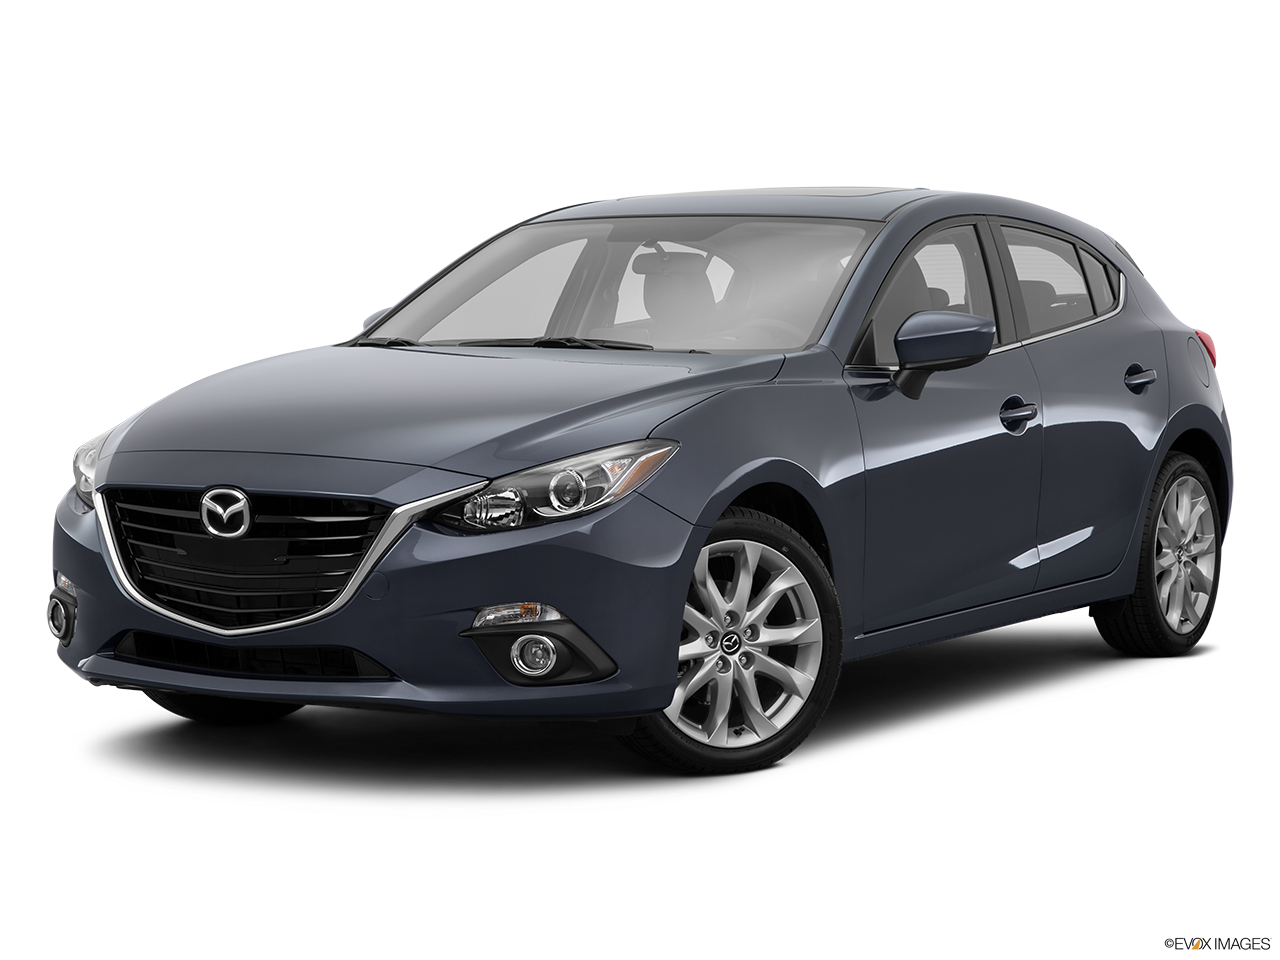 2015 mazda mazda3 photos informations articles. Black Bedroom Furniture Sets. Home Design Ideas